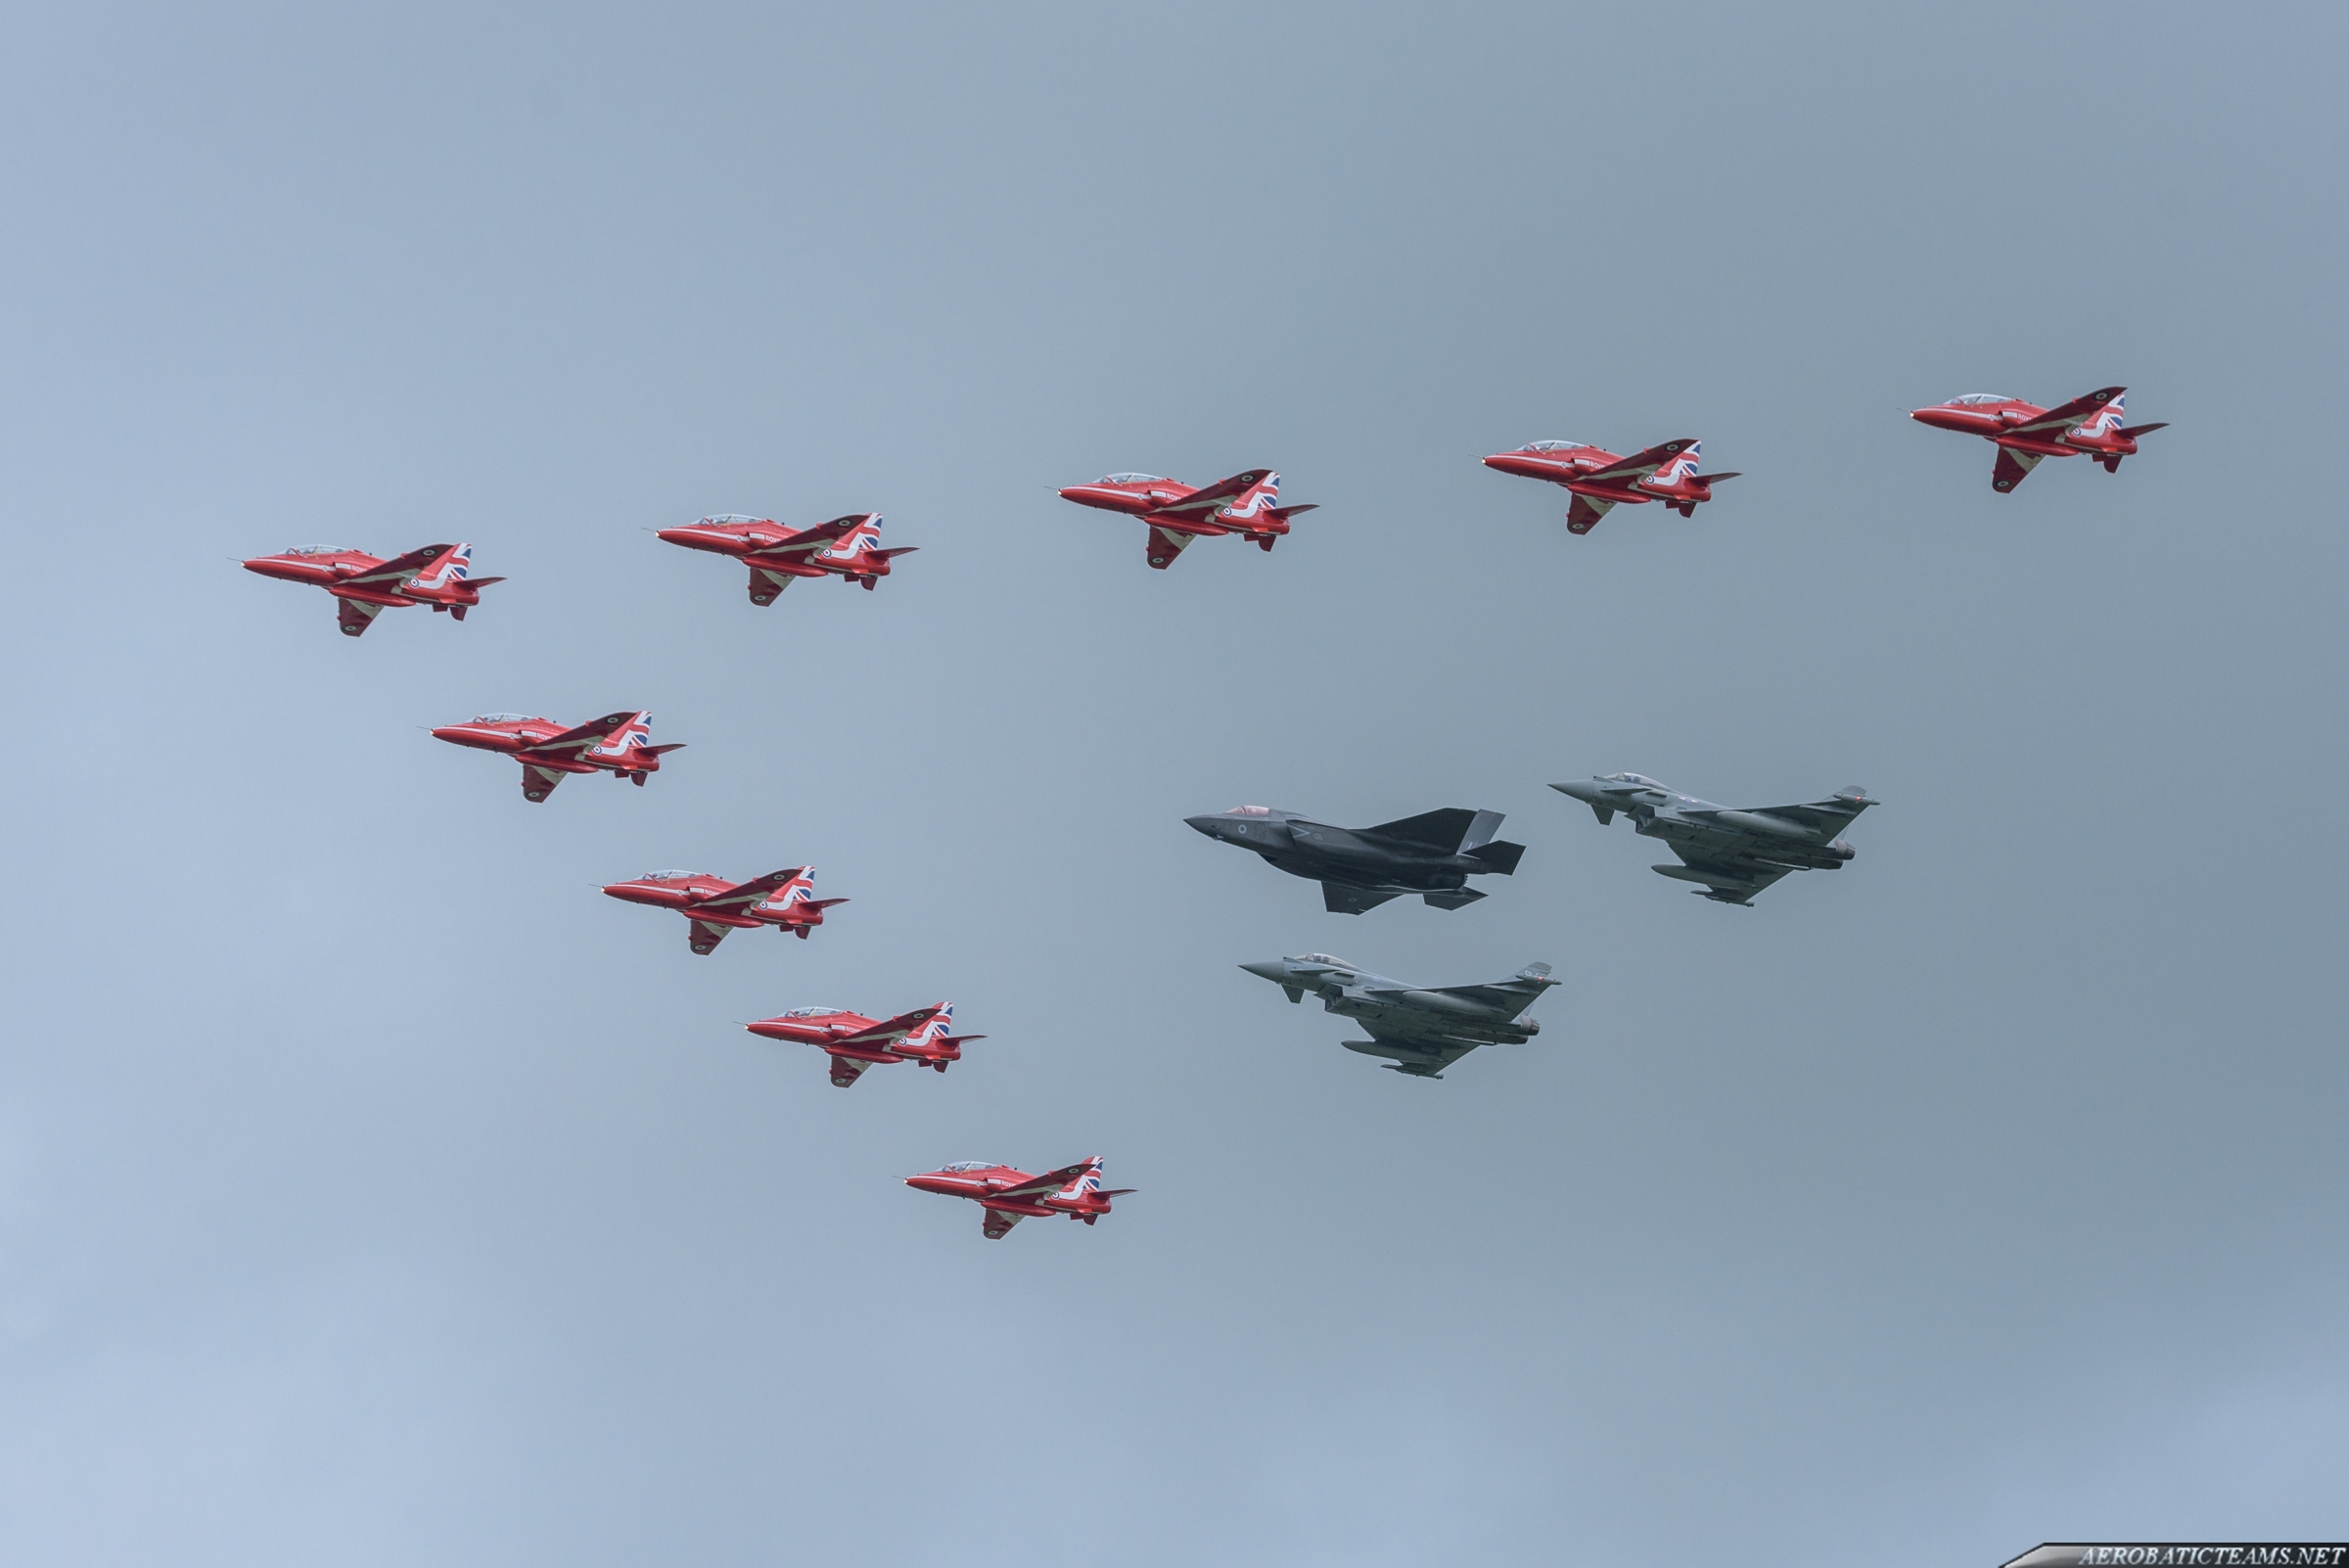 Red Arrows in formation with RAF Typhoons and F-35 at RIAT 2016